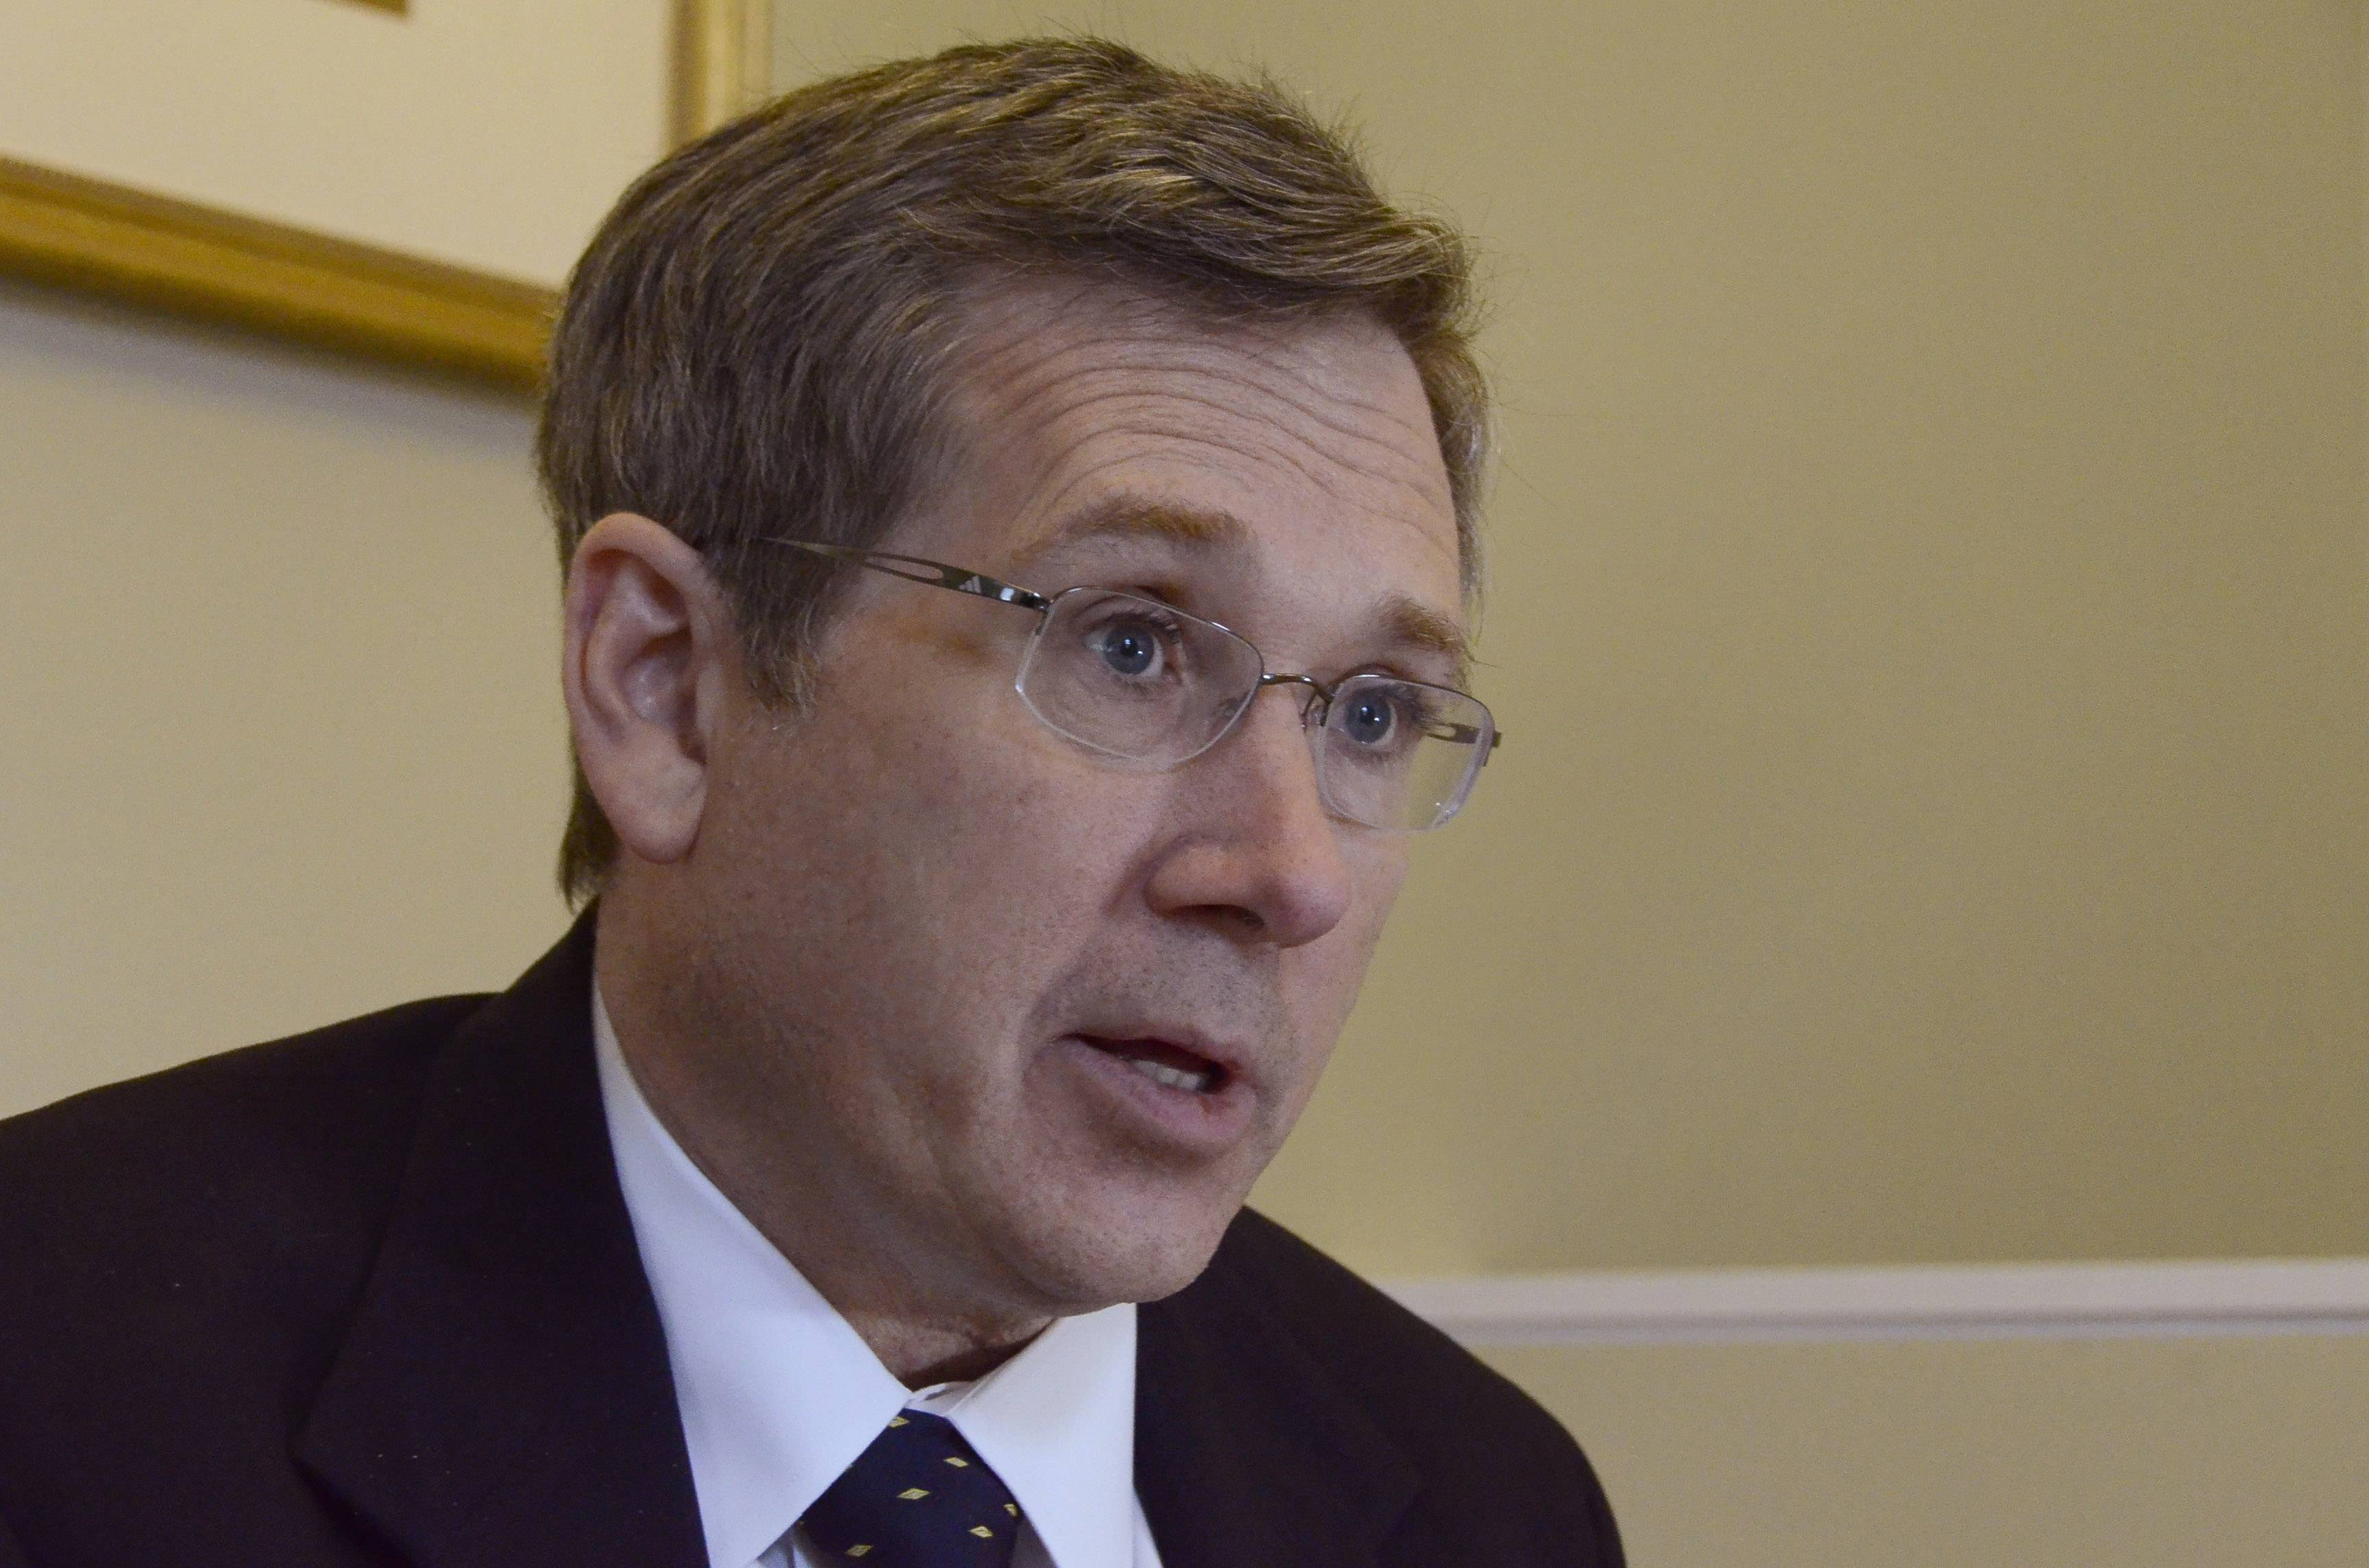 U.S. Sen. Mark Kirk wants the U.S. to file a wrongful-death suit against Russia after this week's plane crash in Ukraine.